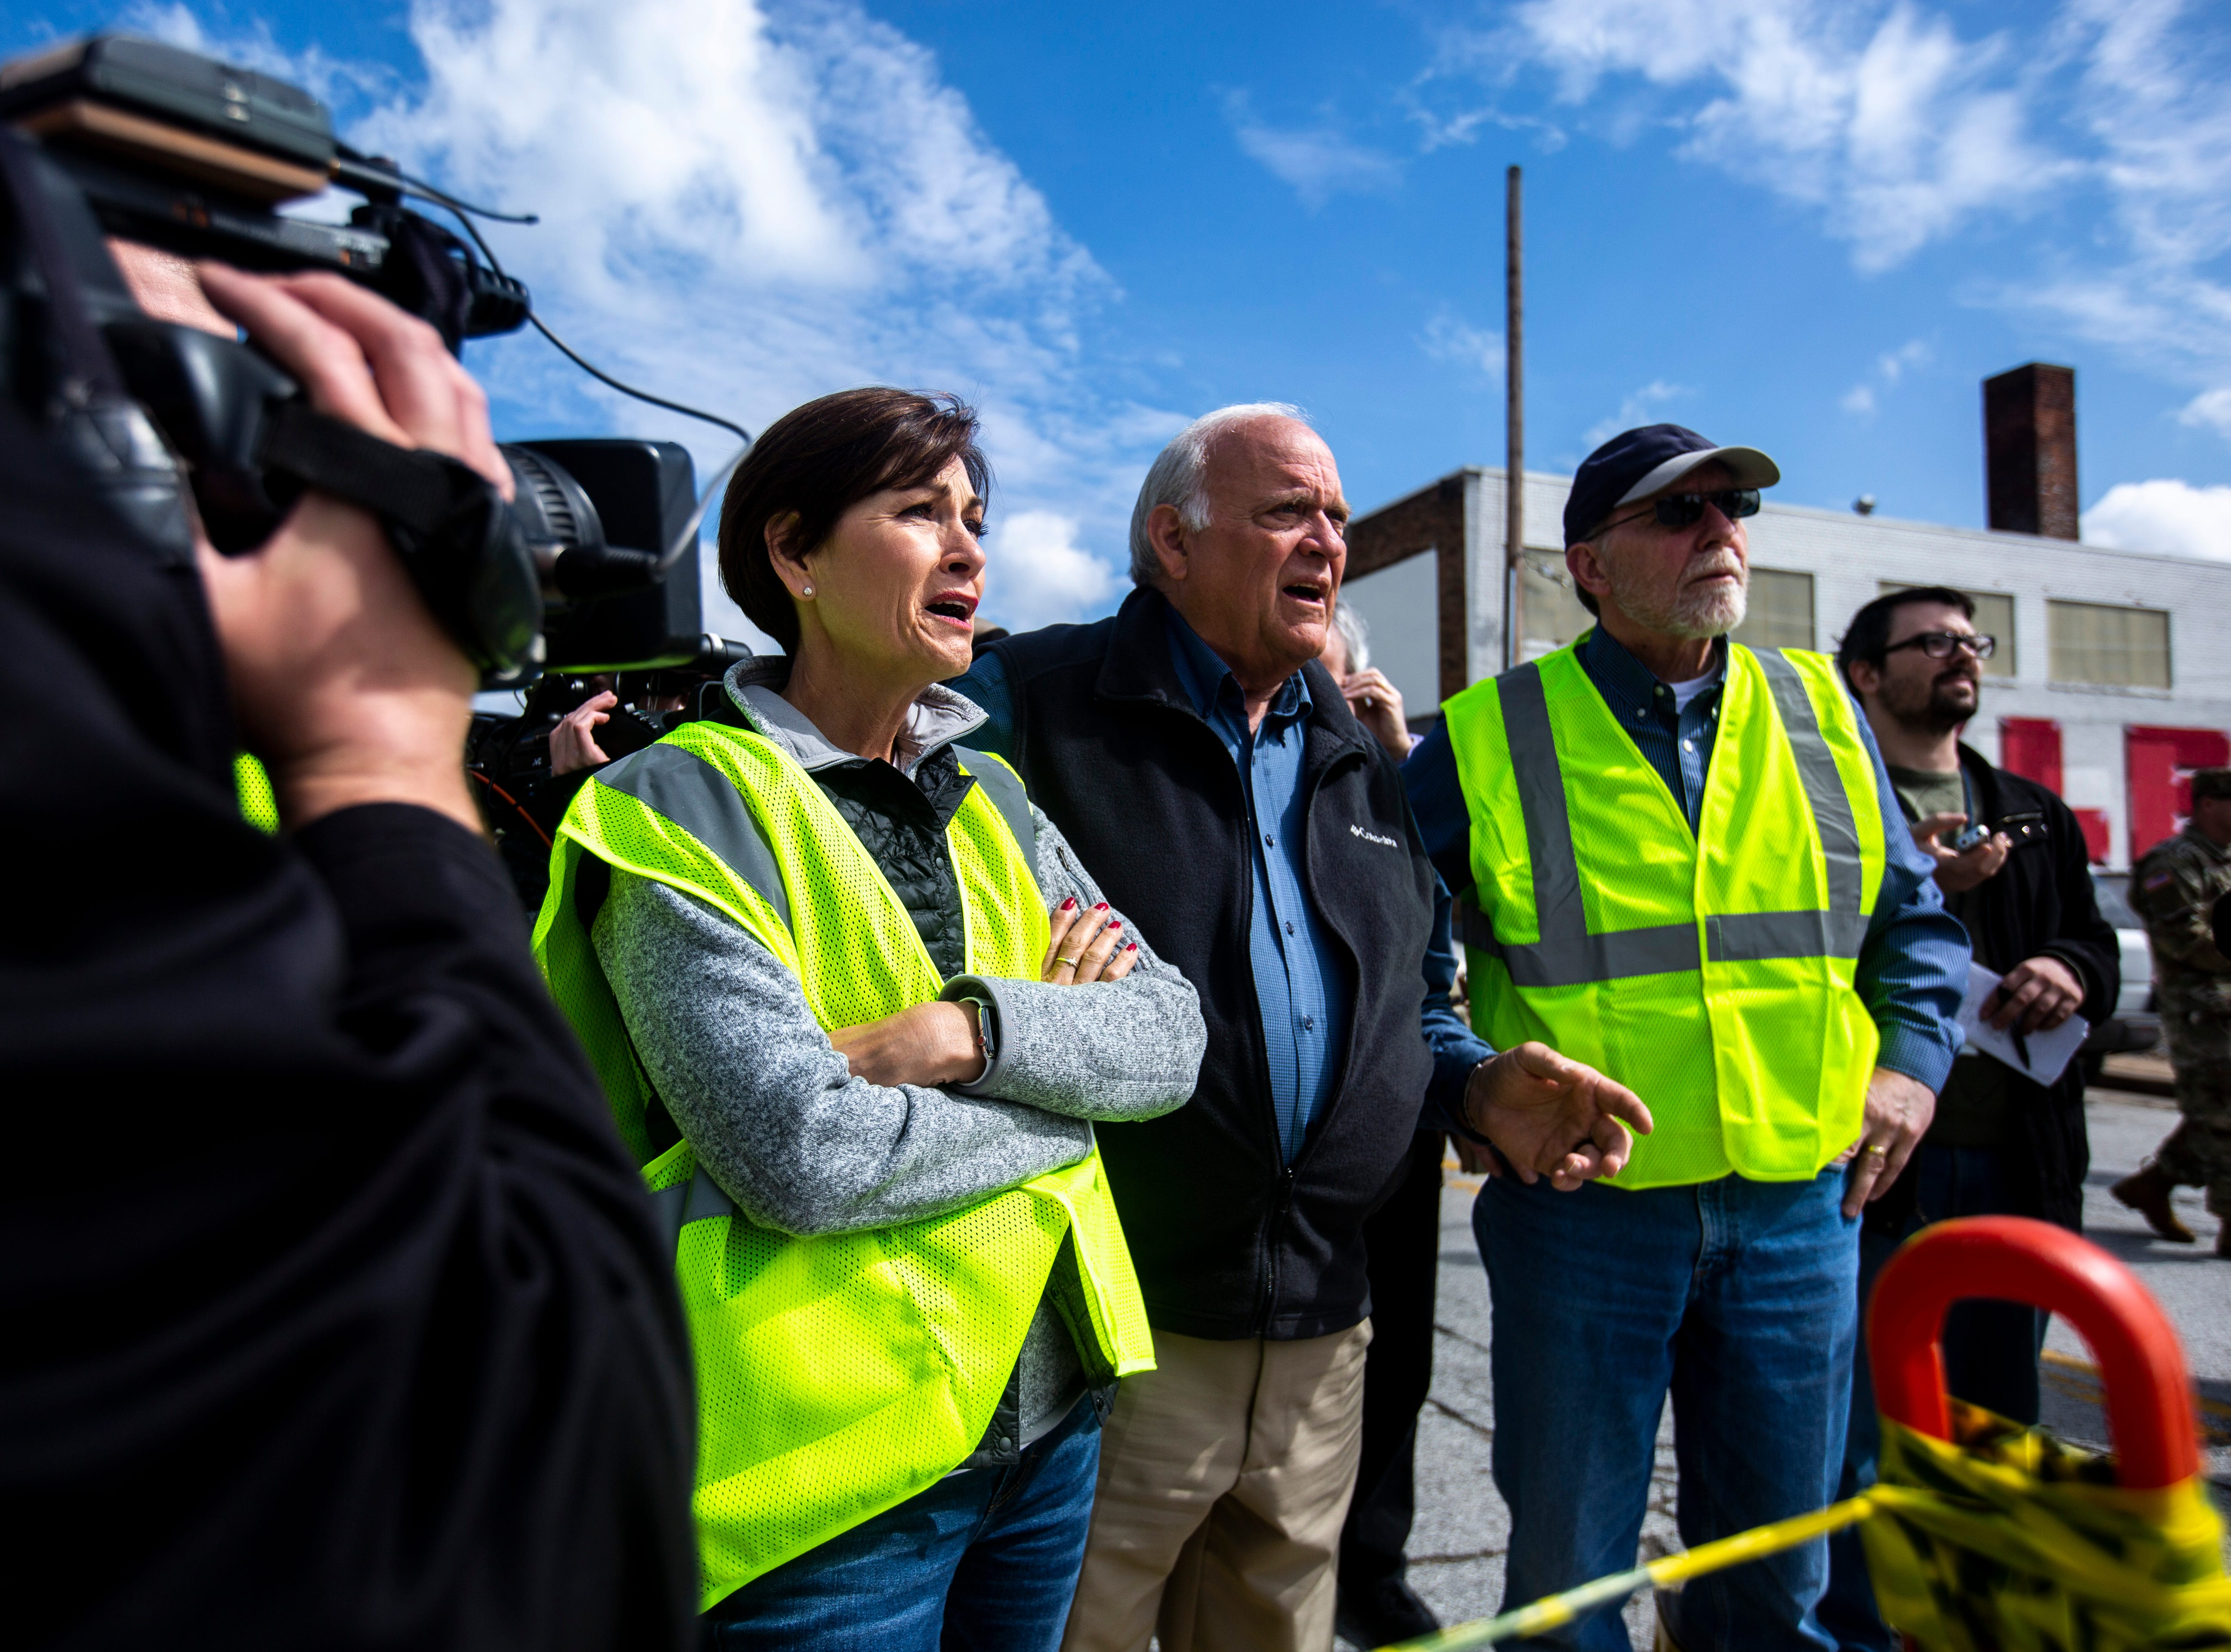 Iowa Gov. Kim Reynolds, looks out past a police line towards Pershing Avenue while touring areas impacted by floodwater, with Davenport Mayor Frank Klipsch and U.S. Rep. Dave Loebsack, D-Iowa, Friday, May 3, 2019, in downtown Davenport, Iowa. The temporary flood barrier at Pershing Avenue and River Drive failed Tuesday afternoon.